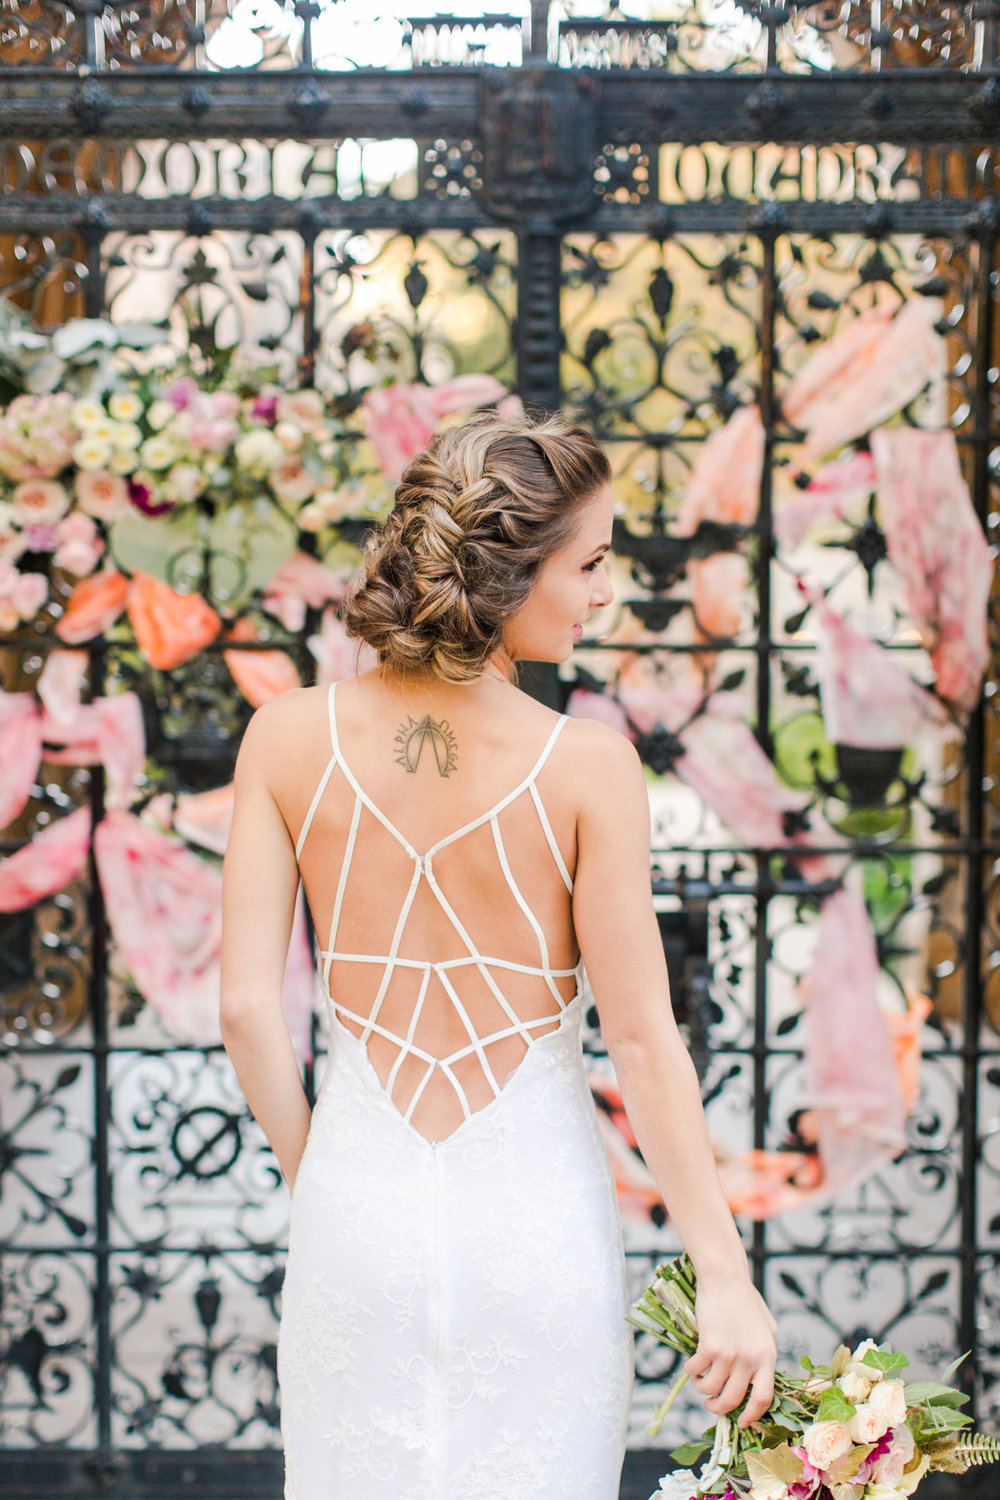 Brides intricate back strap dress with delicate lace - Pearl Weddings & Events